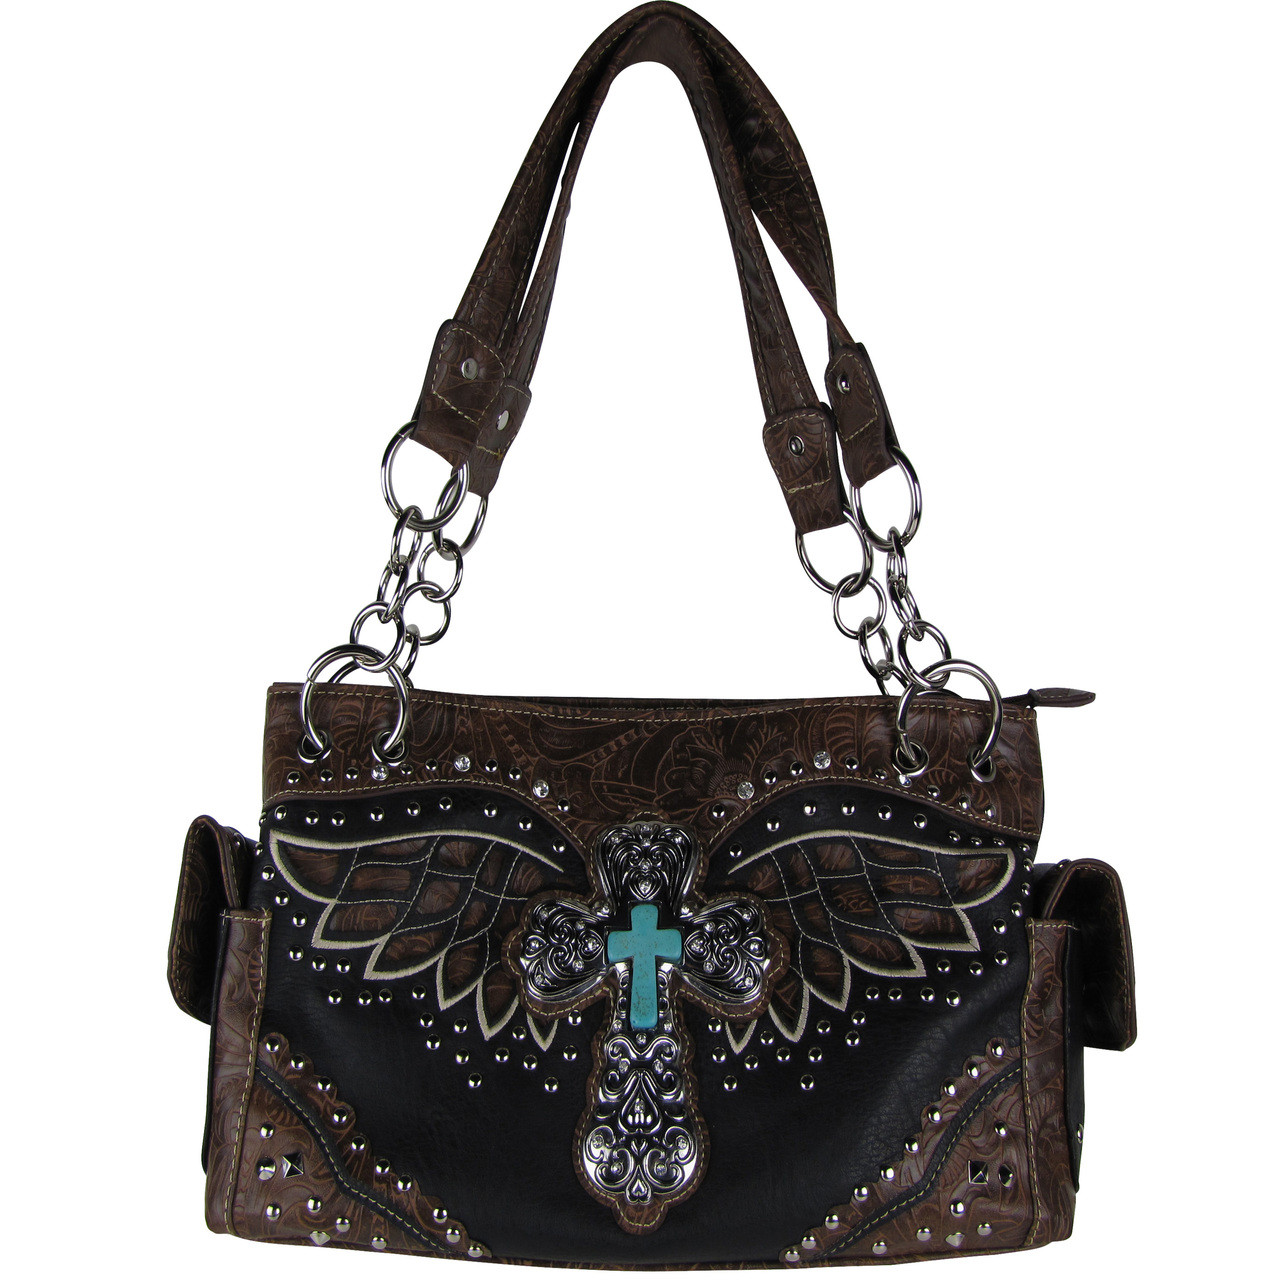 BLACK WESTERN CROSS WITH WINGS LOOK SHOULDER HANDBAG HB1-52LCRBLK